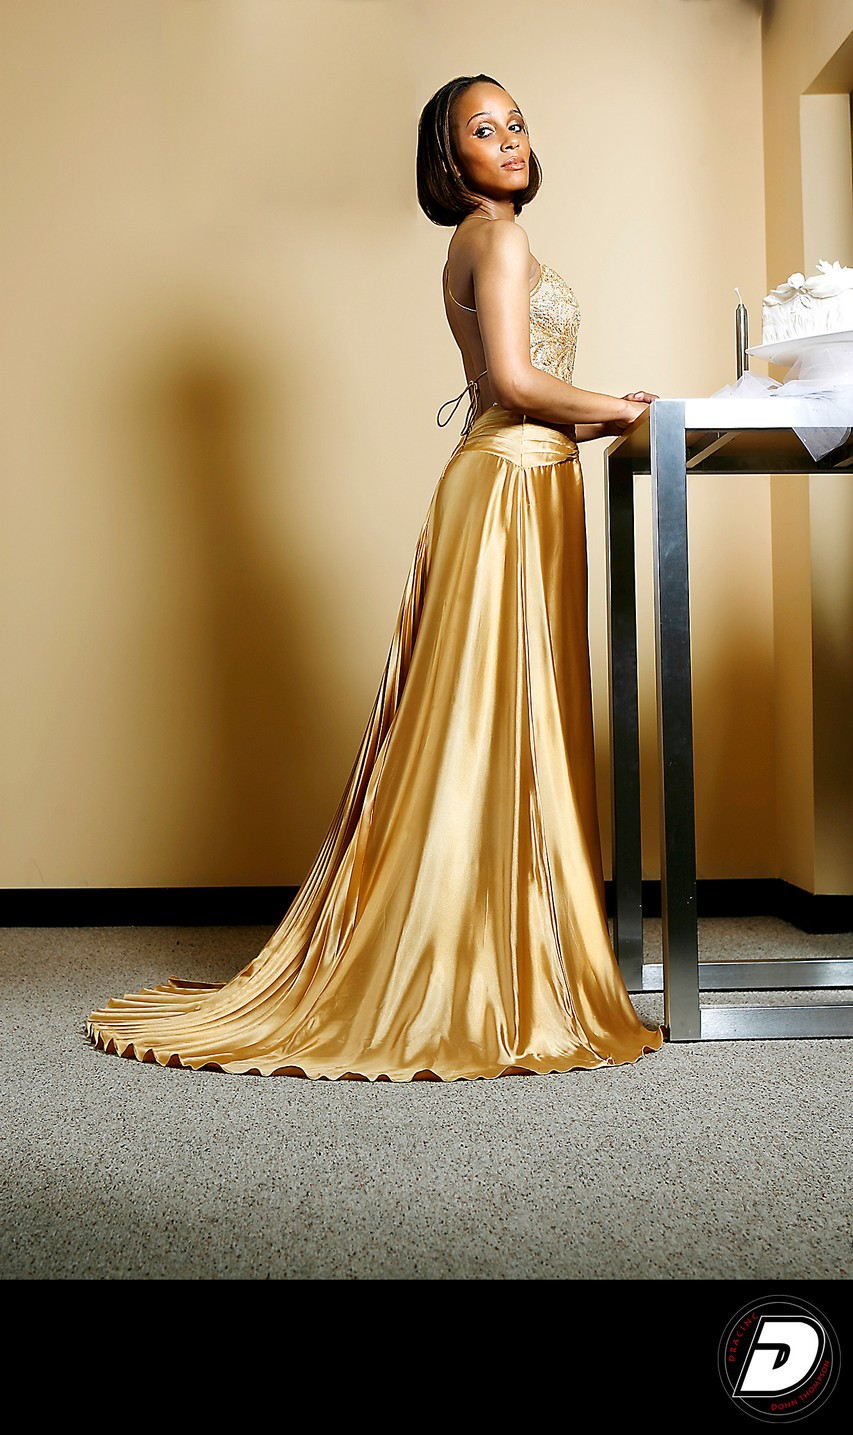 Gold Bridal Wedding Dress Fashion